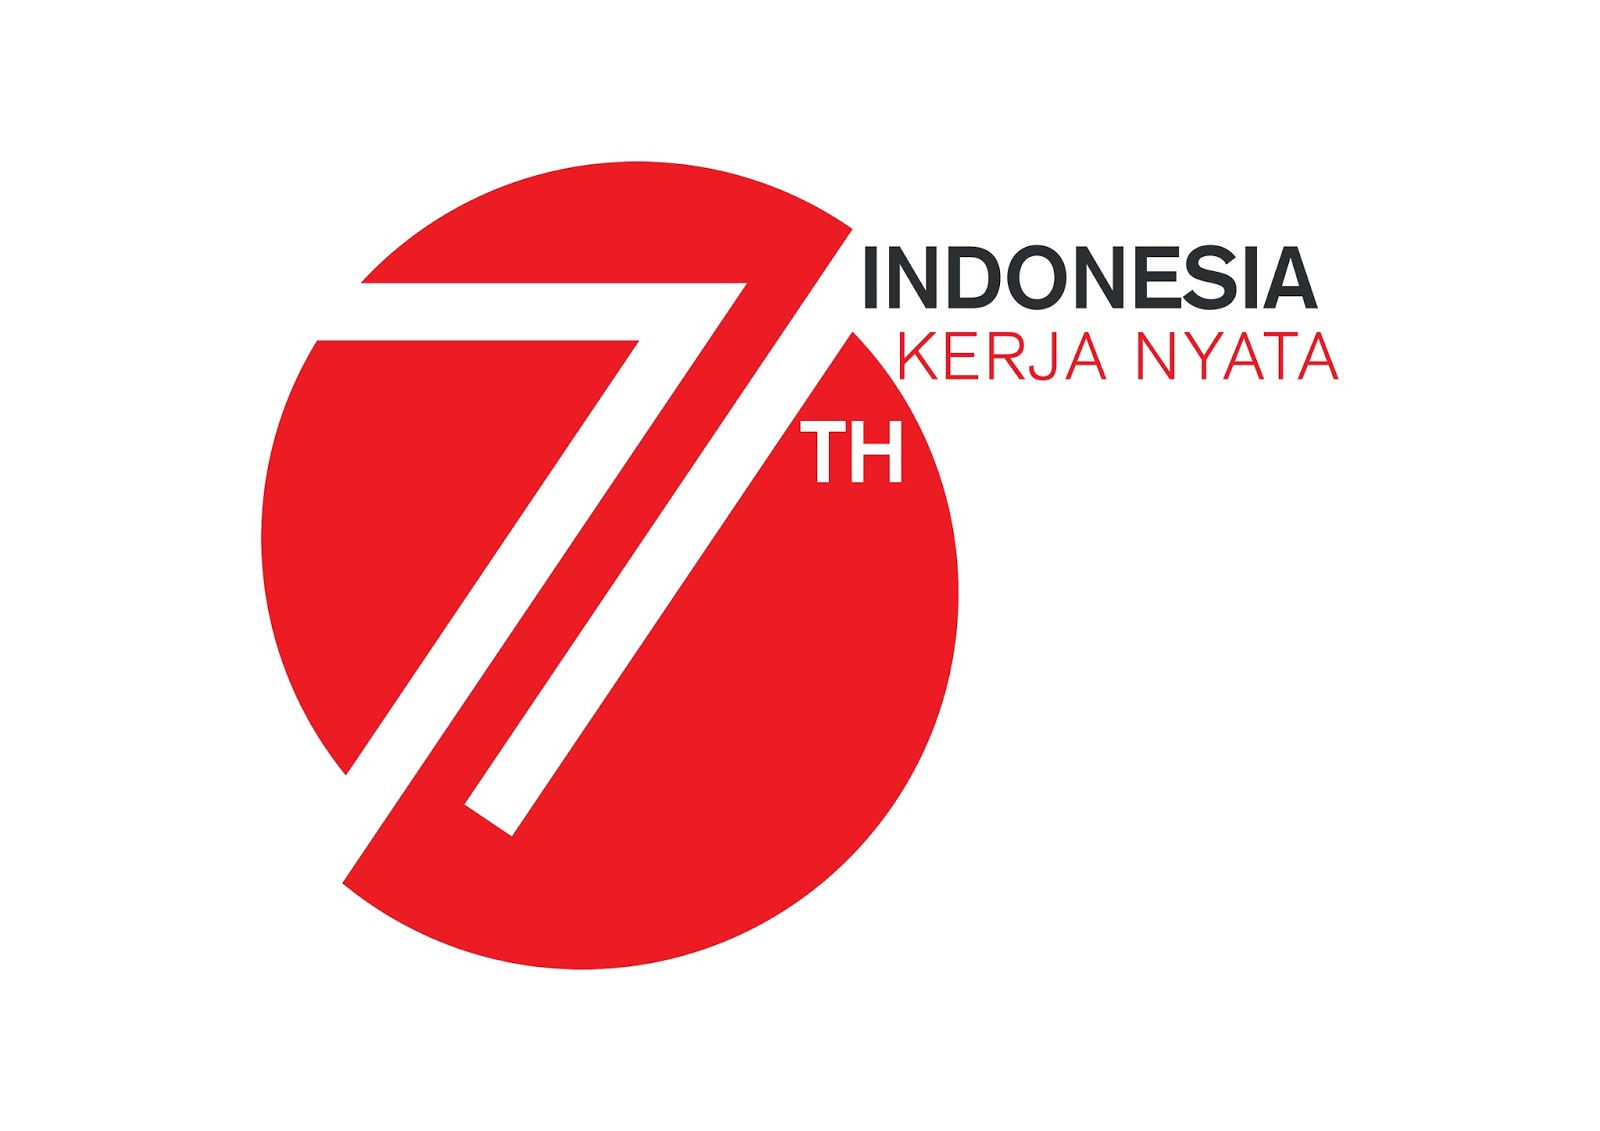 Image of HUT Republik Indonesia KE-71 KERJA NYATA